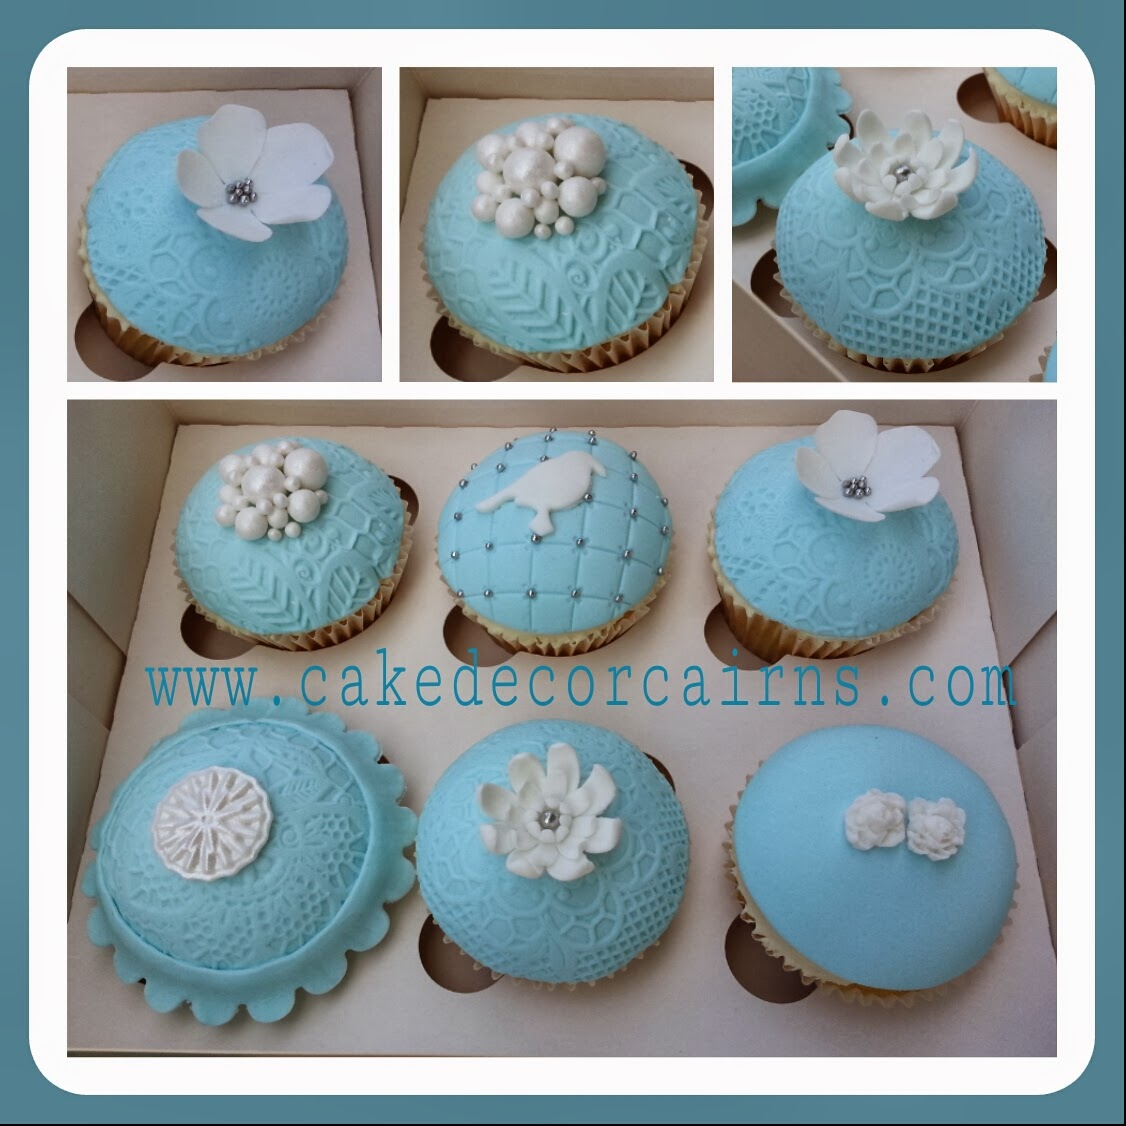 vintage lace fondant cupcakes blue with white flowers, bird and pearls